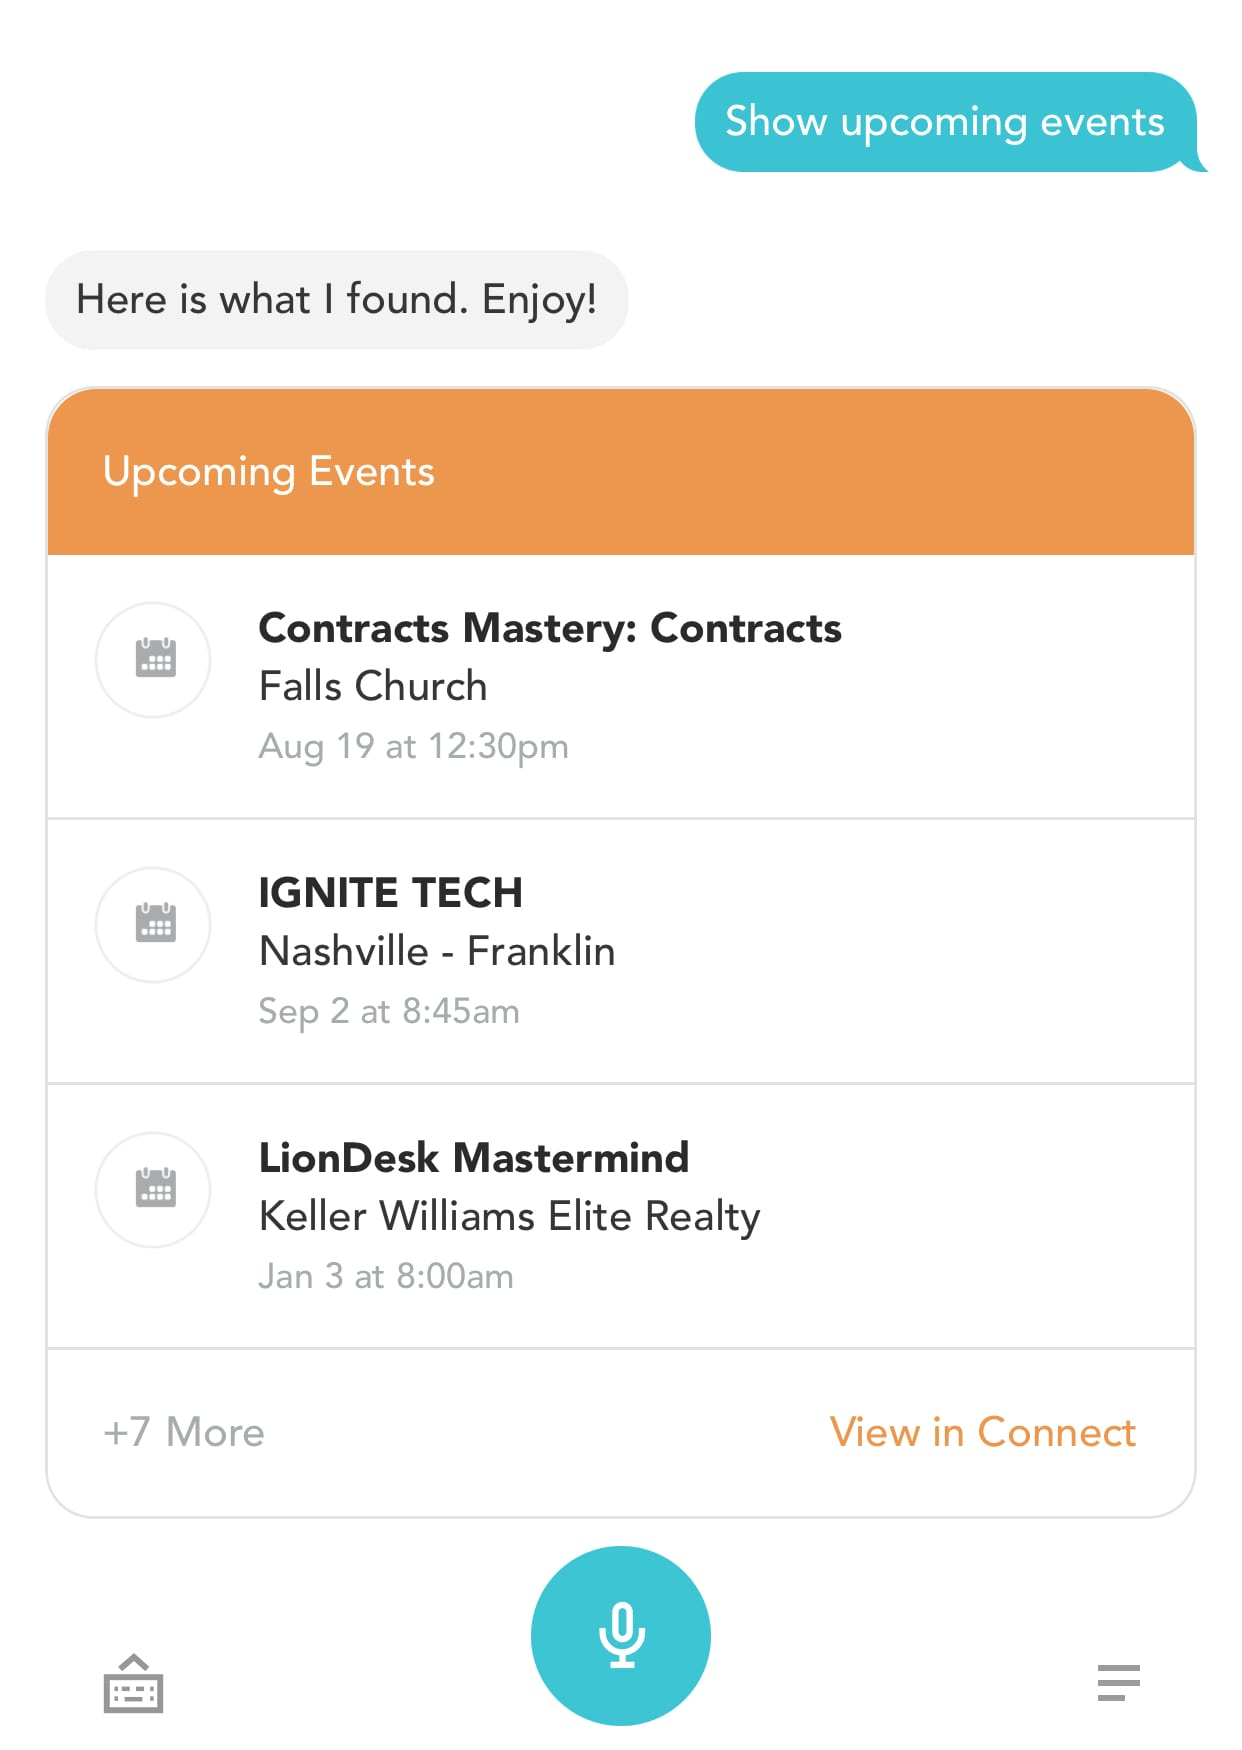 "Kelle Mobile app is open and shows the skill ""show upcoming events"". Kelle responds with ""Here is what I found. Enjoy! - a list of events is displayed"